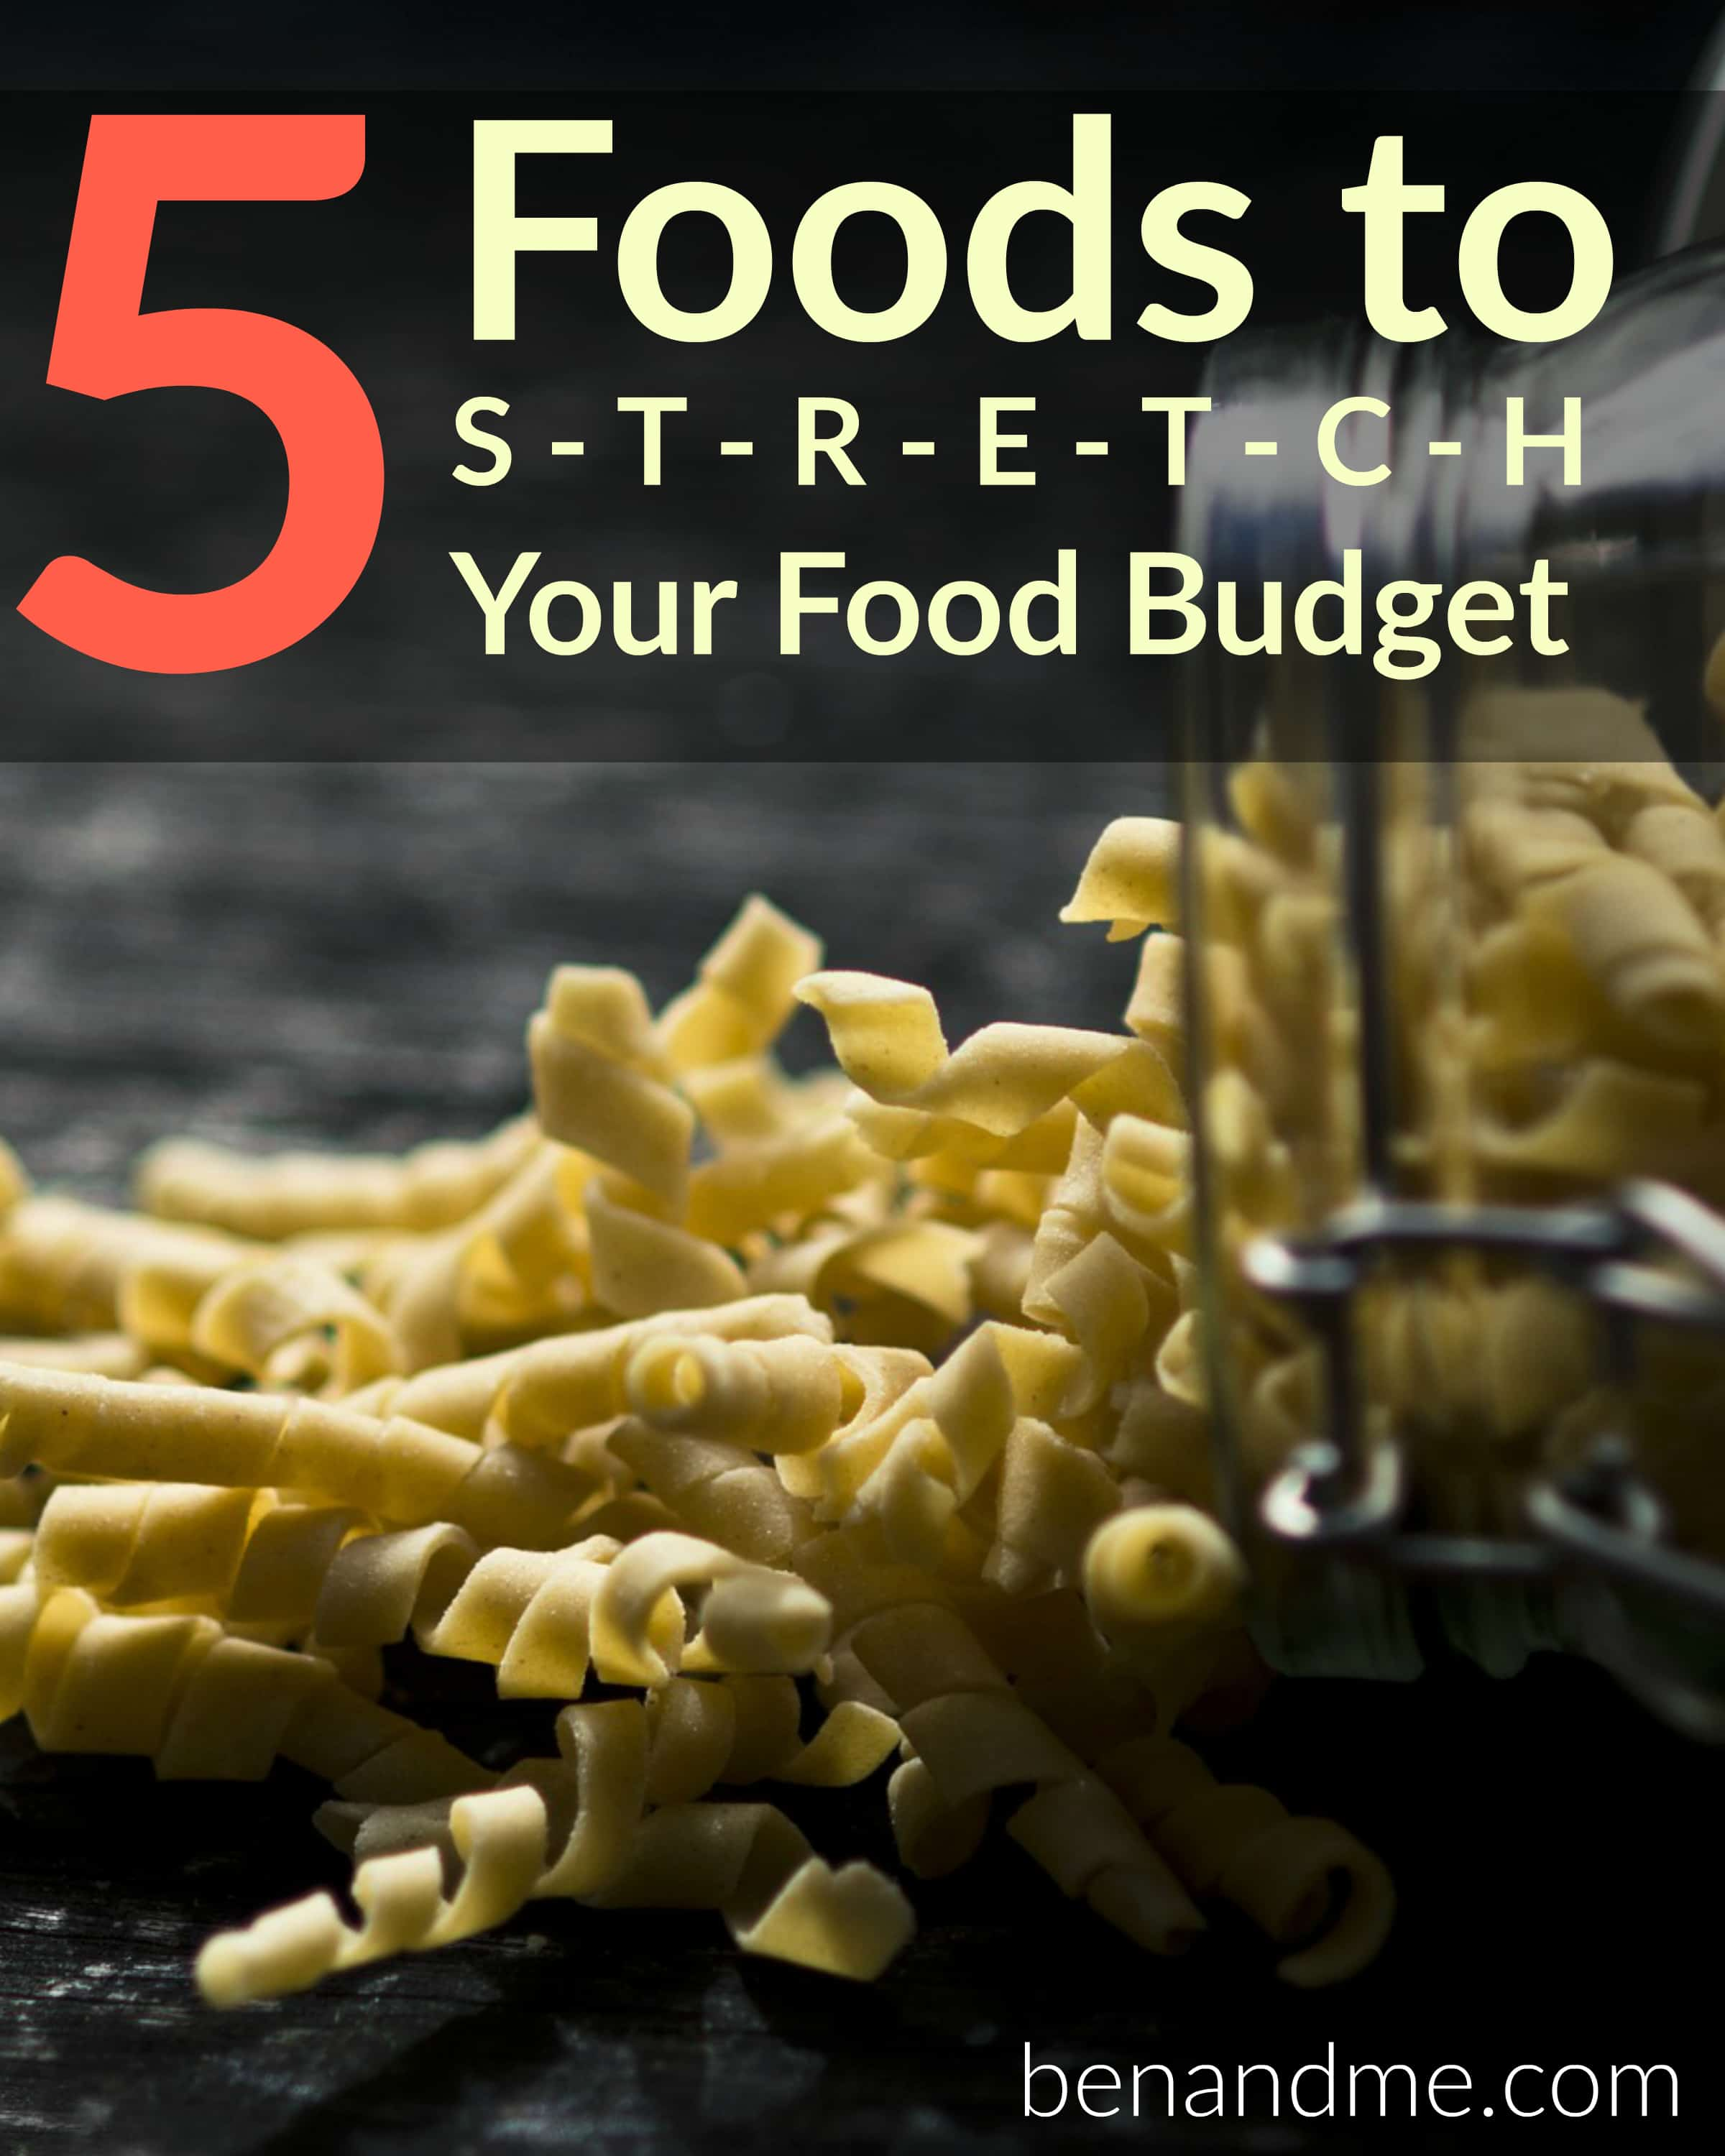 5 Food to Stretch Your Food Budget